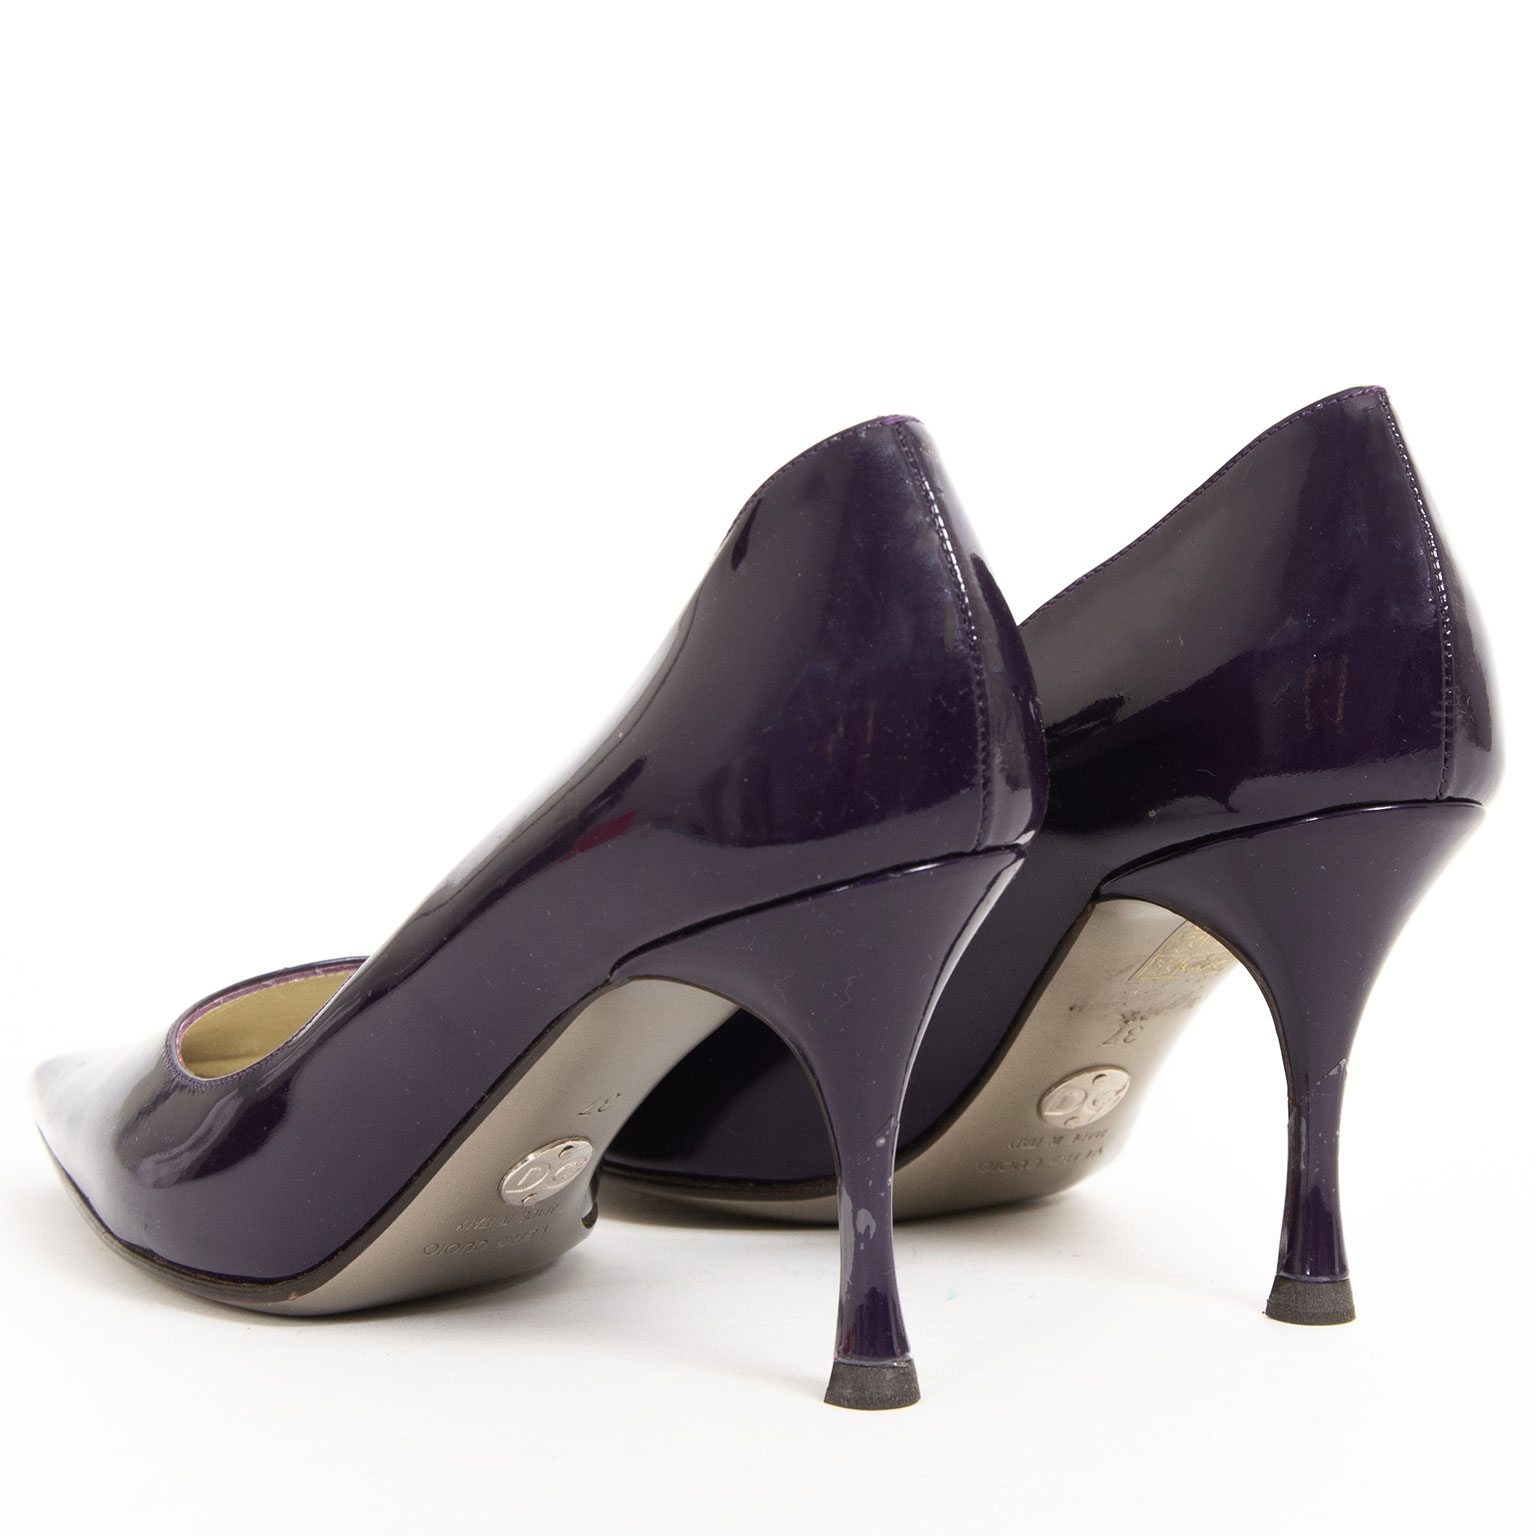 dolce & gabbana purple patent leather heels now for sale at labellov vintage fashion webshop belgium